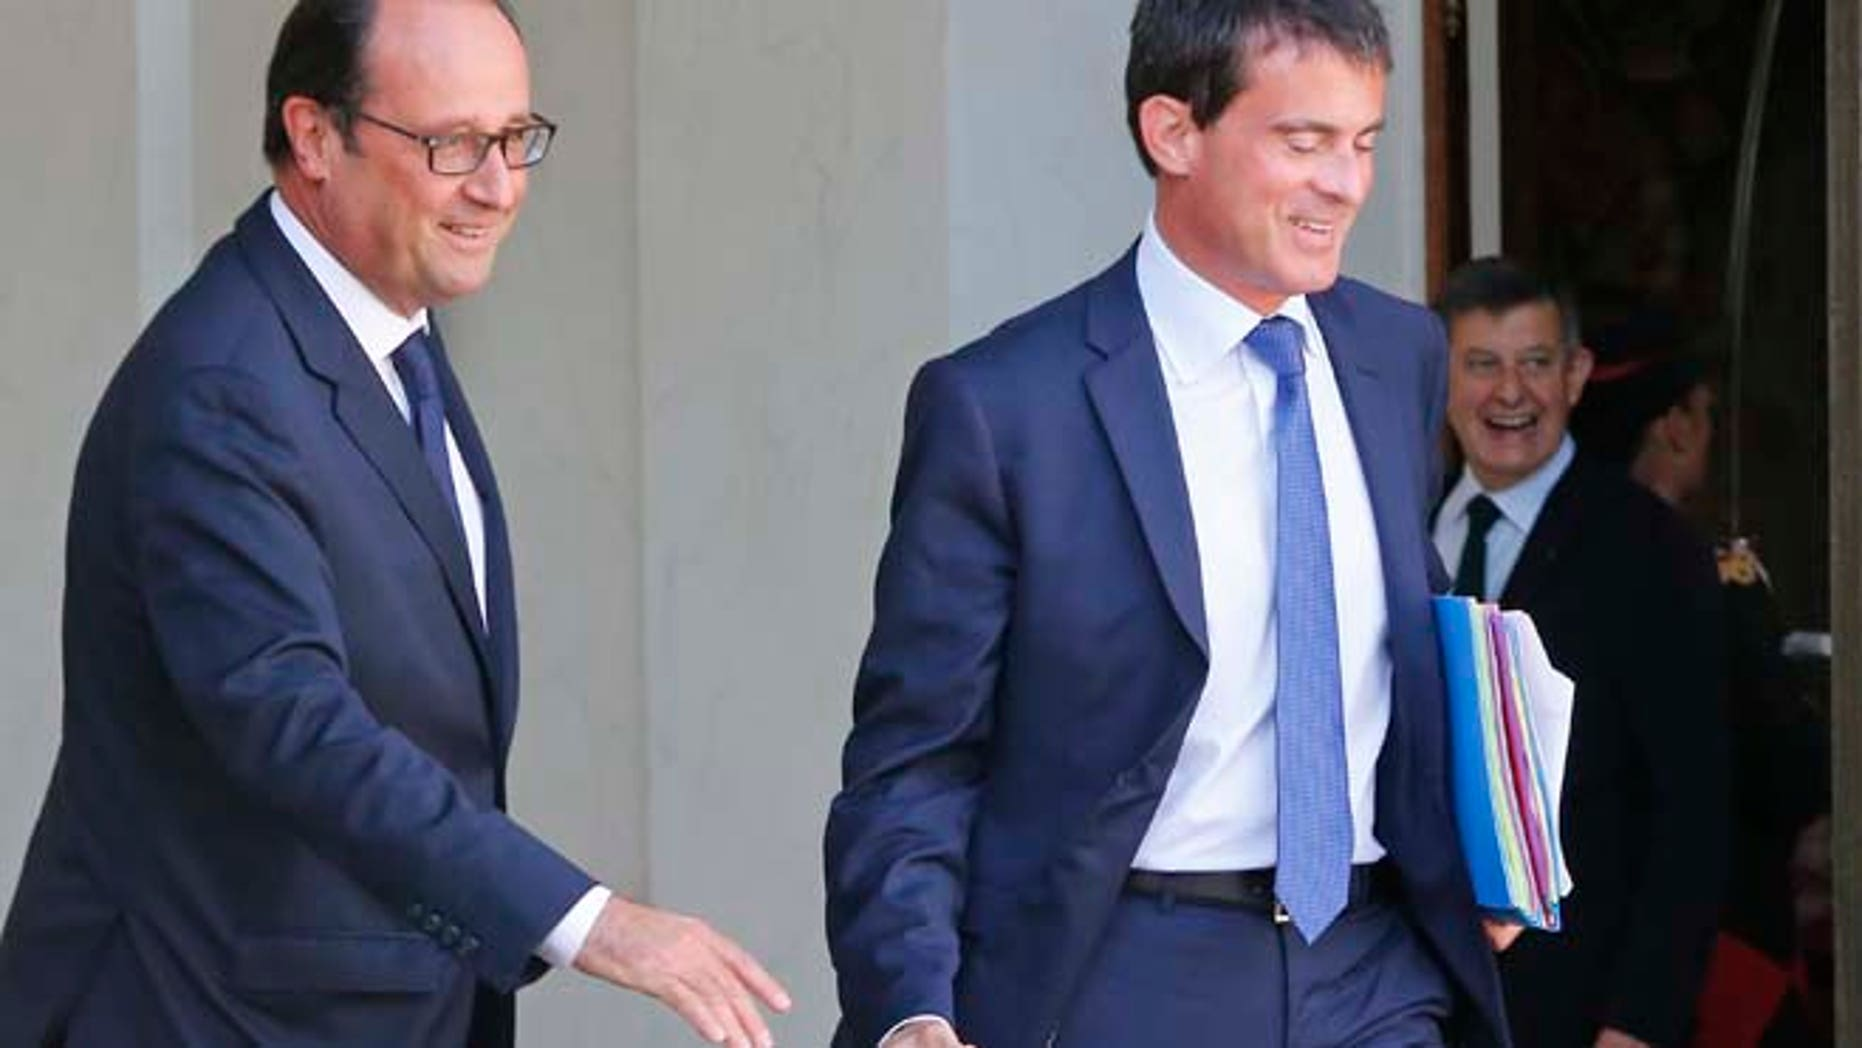 Sept. 3, 2014: French President Francois Hollande, left, and Prime Minister Manuel Valls prepare to shake hands after the weekly cabinet meeting at the Elysee Palace, in Paris, France. (AP)